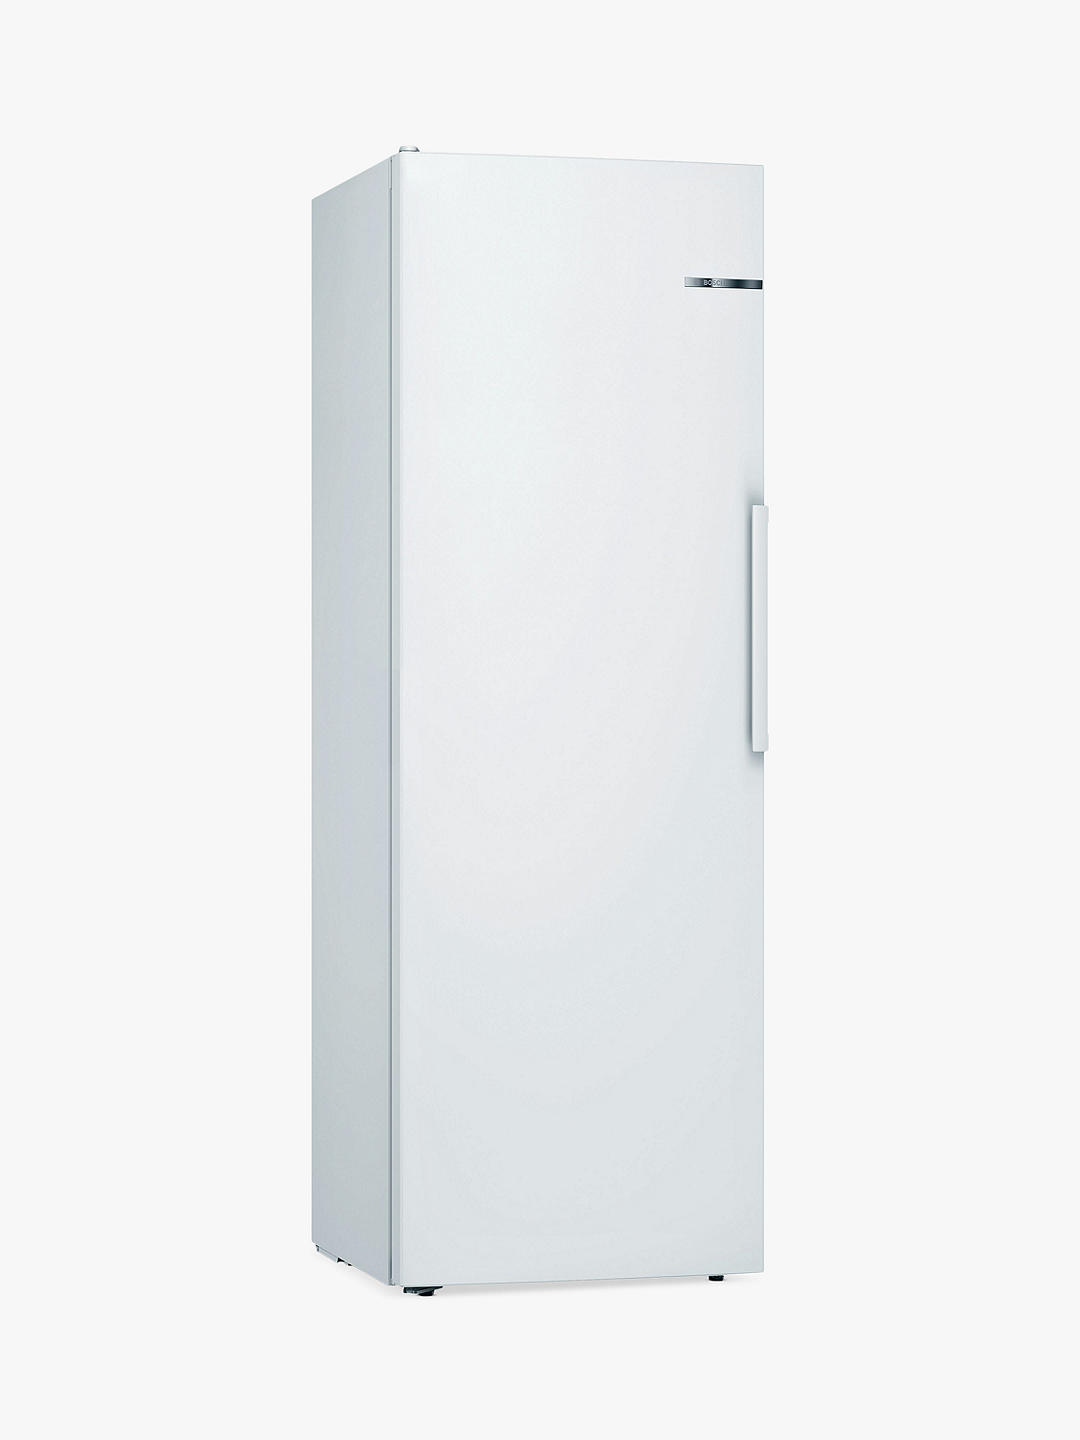 Buy Bosch Serie 4 KSV33VWEPG Freestanding Fridge, White Online at johnlewis.com